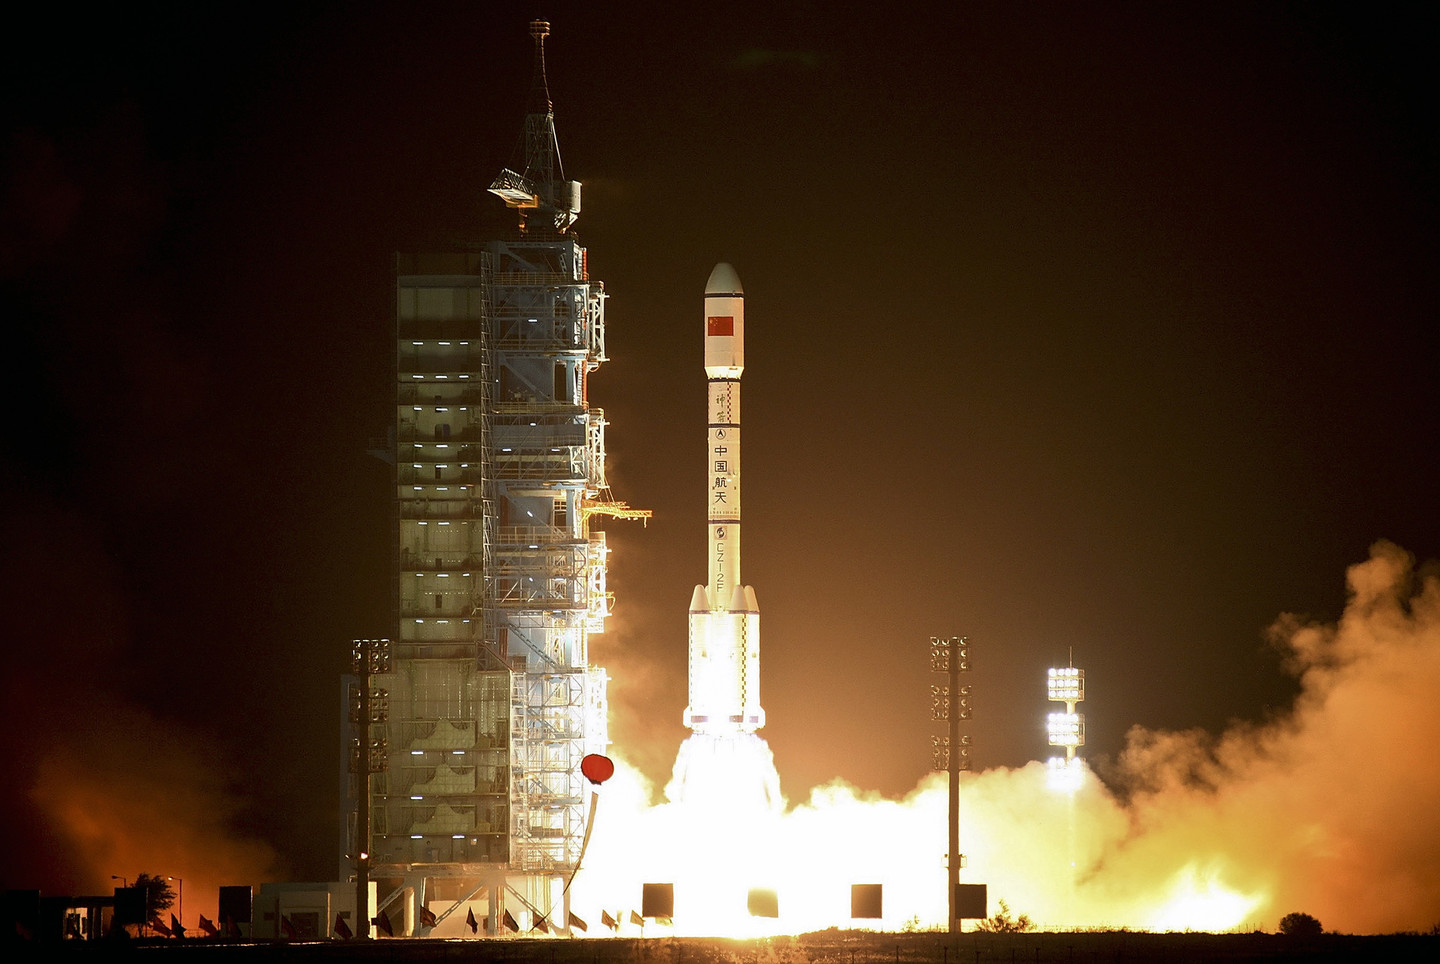 china space agency - HD1440×964